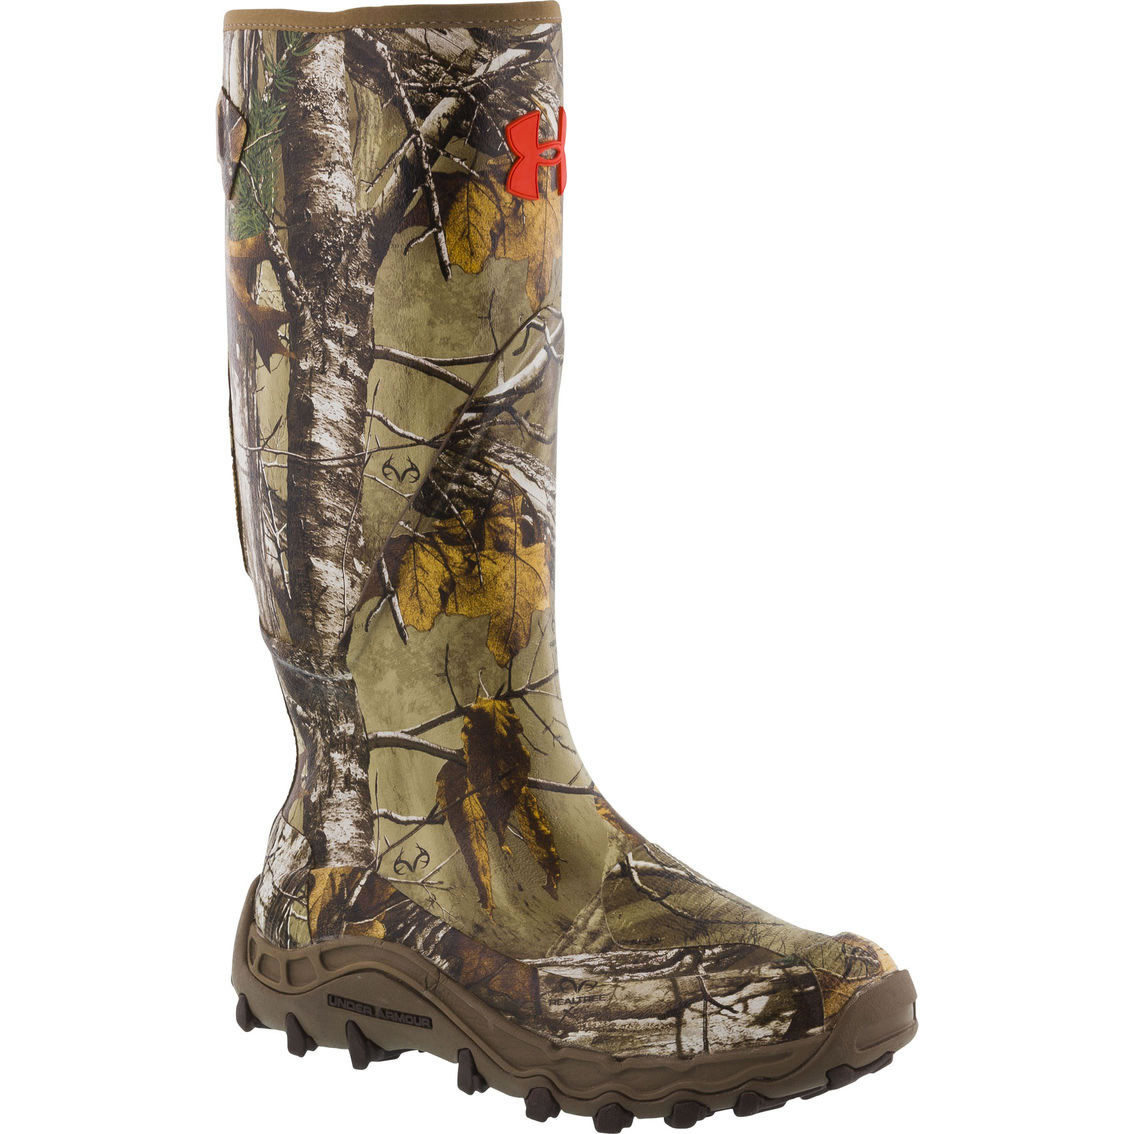 5f7b3ea12e8 Under Armour Mens Haw Madillo Uninsulated Hunting Mud Muck Boots  Camo-Realtree Xtra